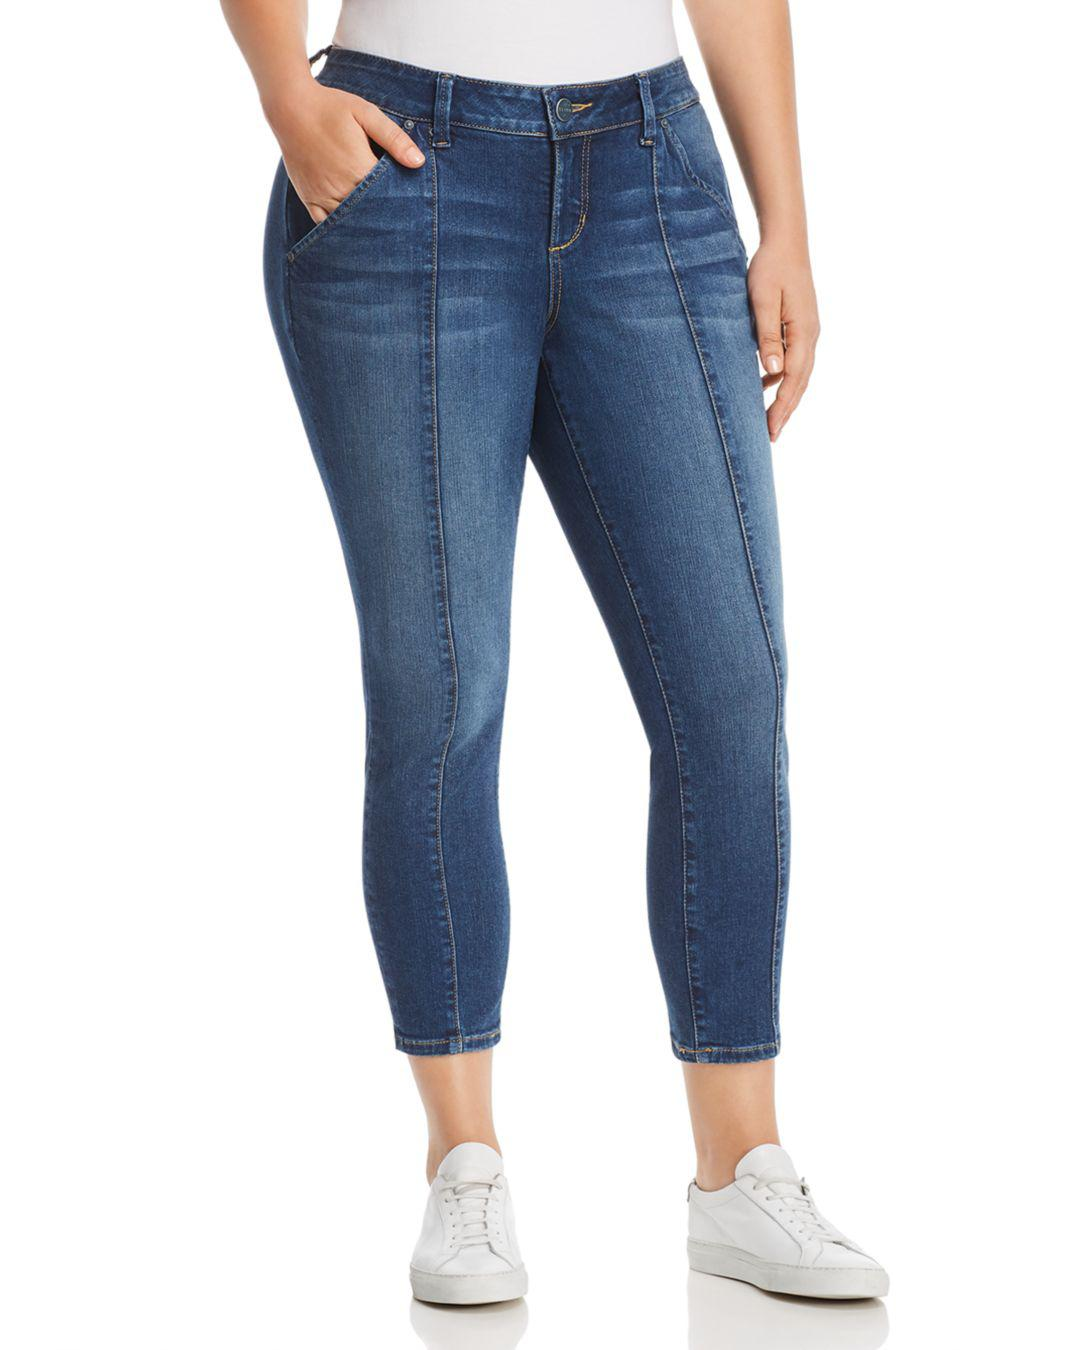 5e57c4e15b Lyst - Slink Jeans Plus Seamed Cropped Jeans In Francis in Blue